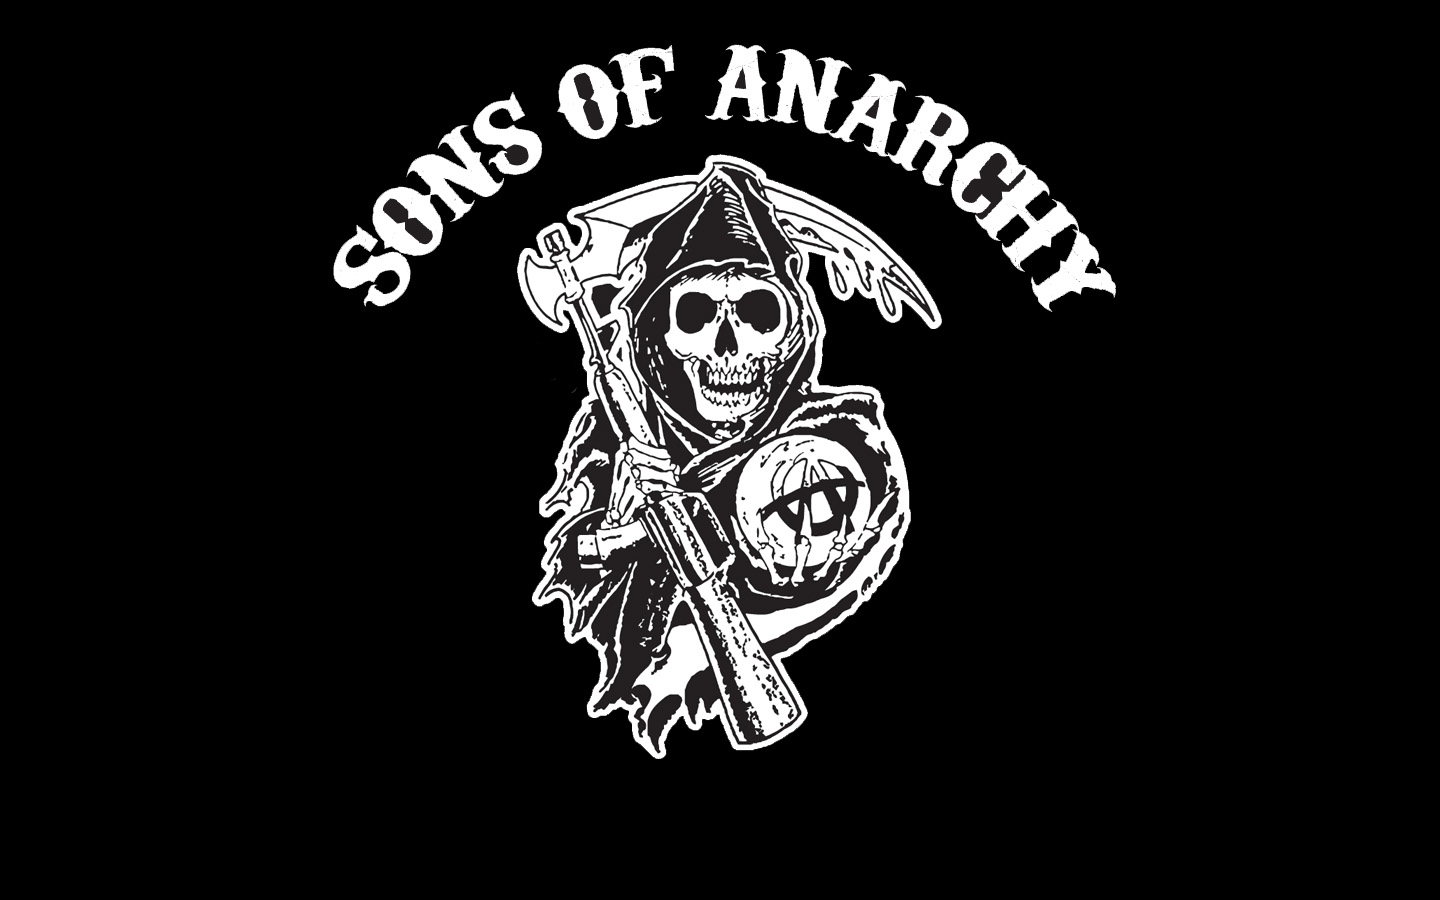 Sons of Anarchy (season 1)